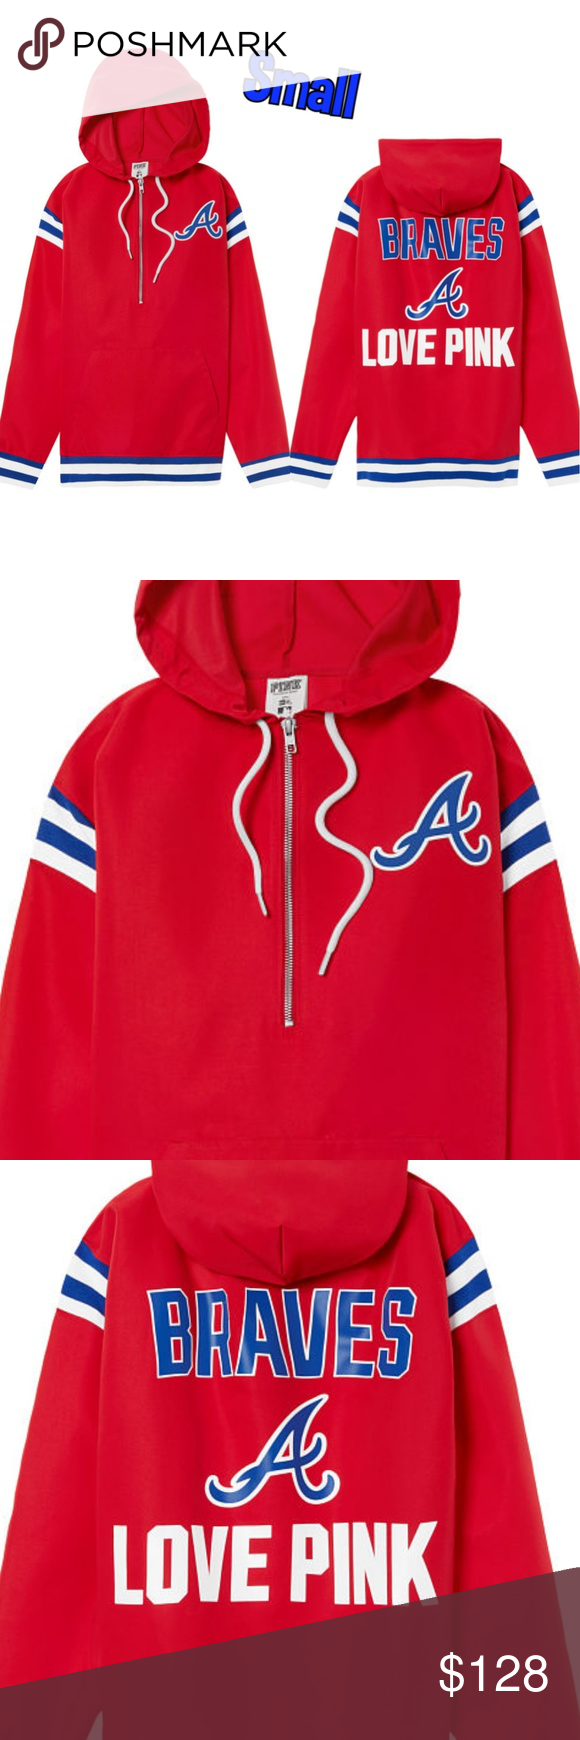 New Vs Pink Atlanta Braves Anorak Windbreaker Super High Quality Material The Most Amazing Anoraks I H Ave Ever Seen Clothes Design Anorak Fashion Design